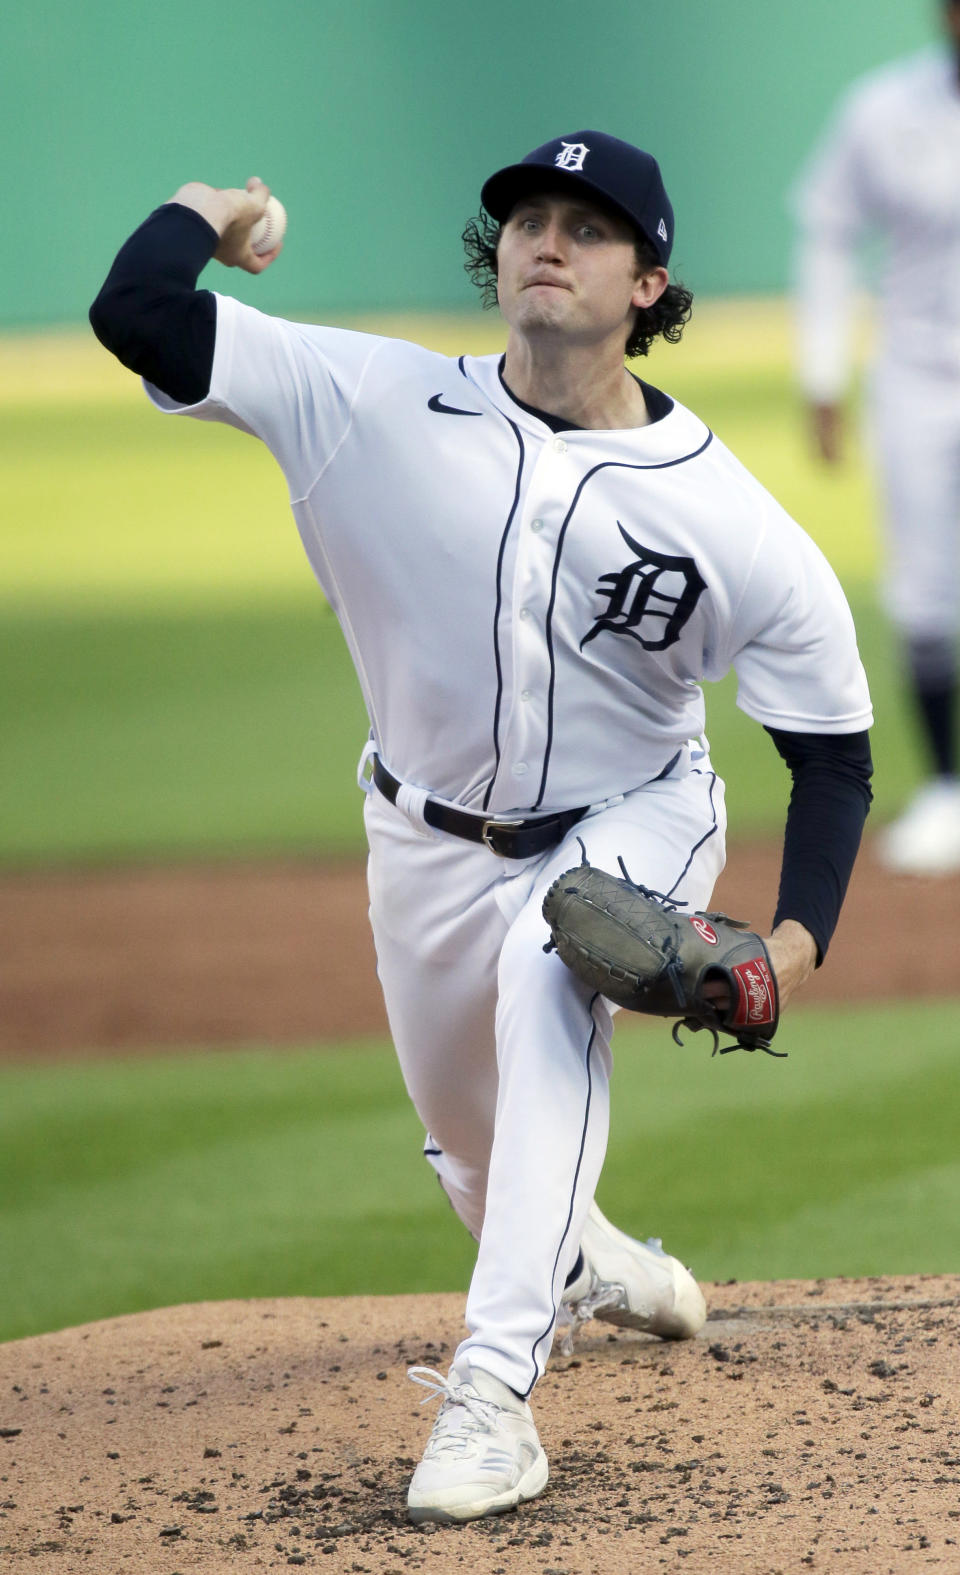 Detroit Tigers starter Casey Mize pitches against the Seattle Mariners during the third inning of a baseball game Wednesday, June 9, 2021, in Detroit. (AP Photo/Duane Burleson)